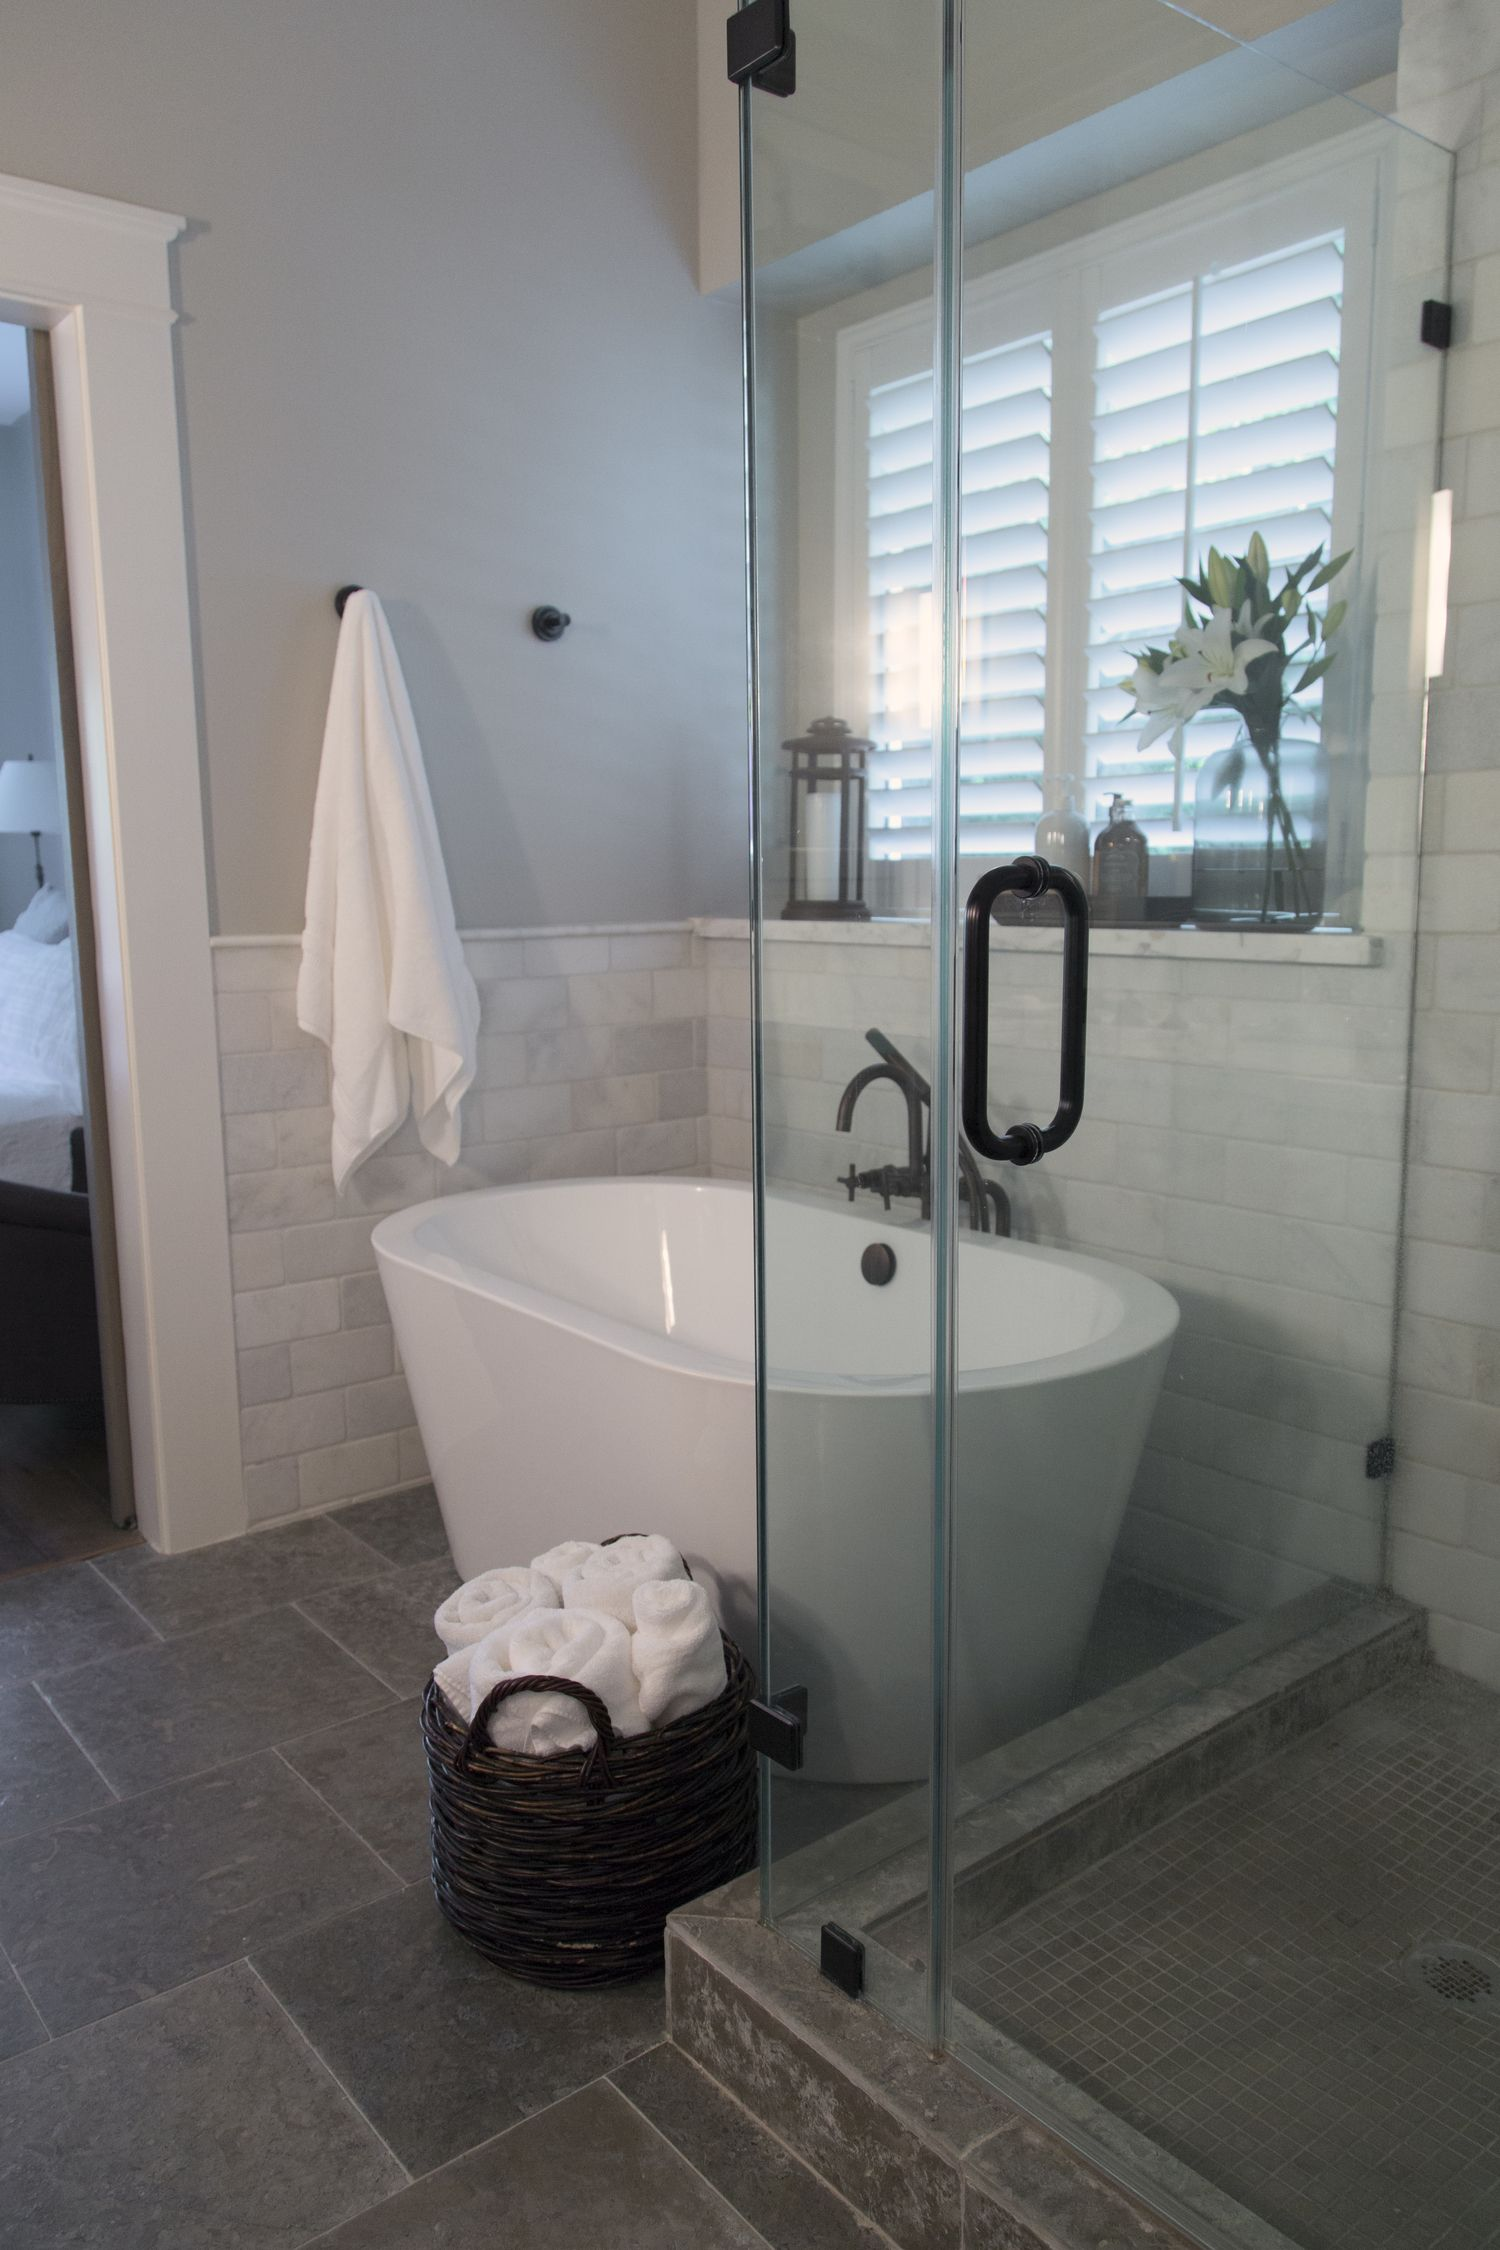 Before & After: A Confined Bathroom Is Uplifted with Bountiful Space ...